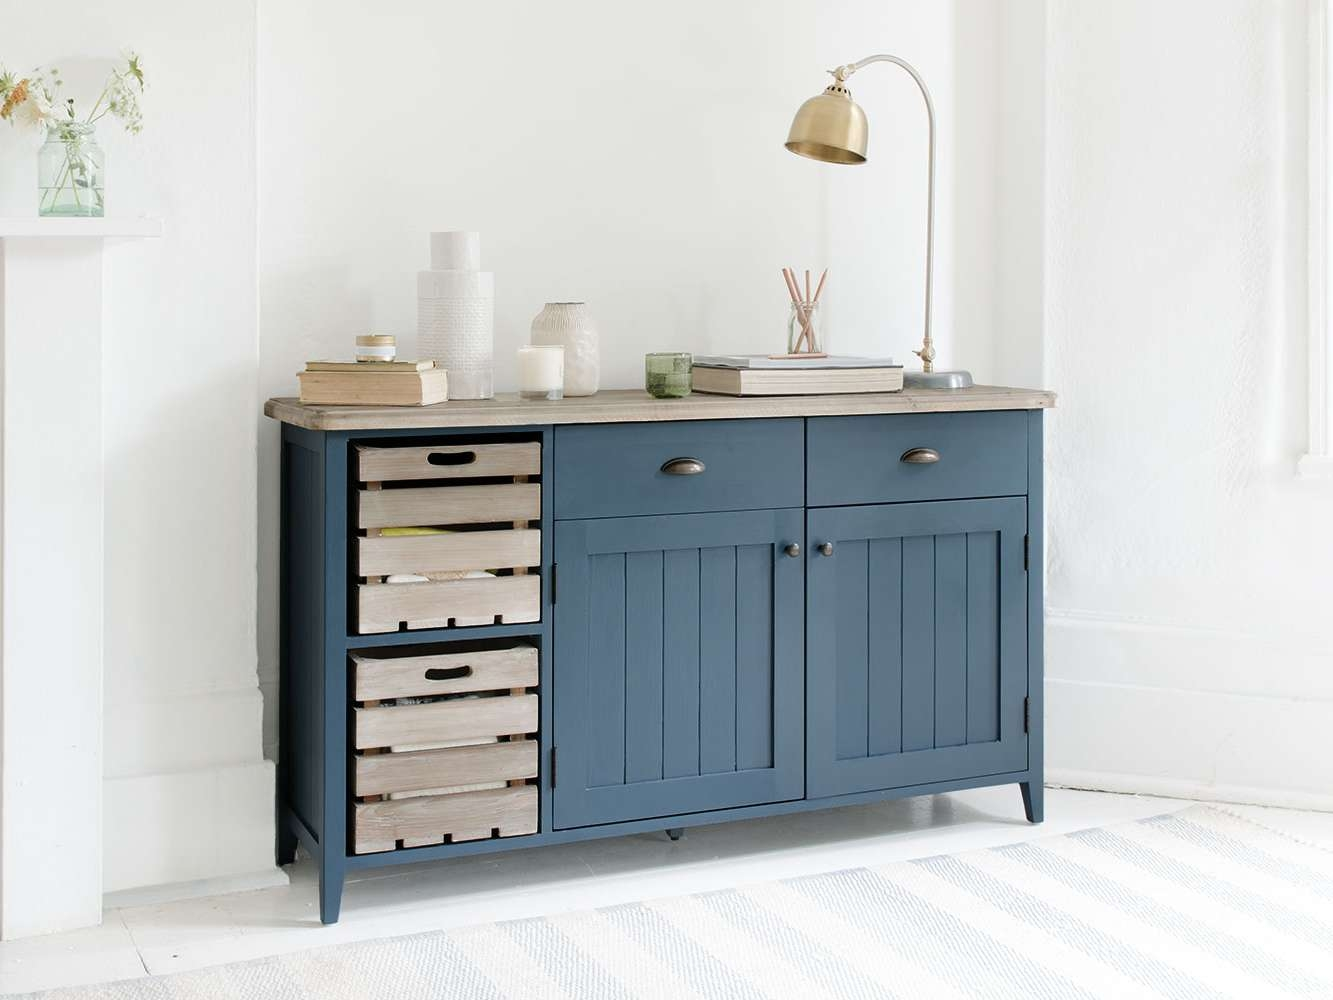 Cidre Sideboard In Inky Blue | Painted Sideboard | Loaf With Regard To Painted Sideboards (View 6 of 20)